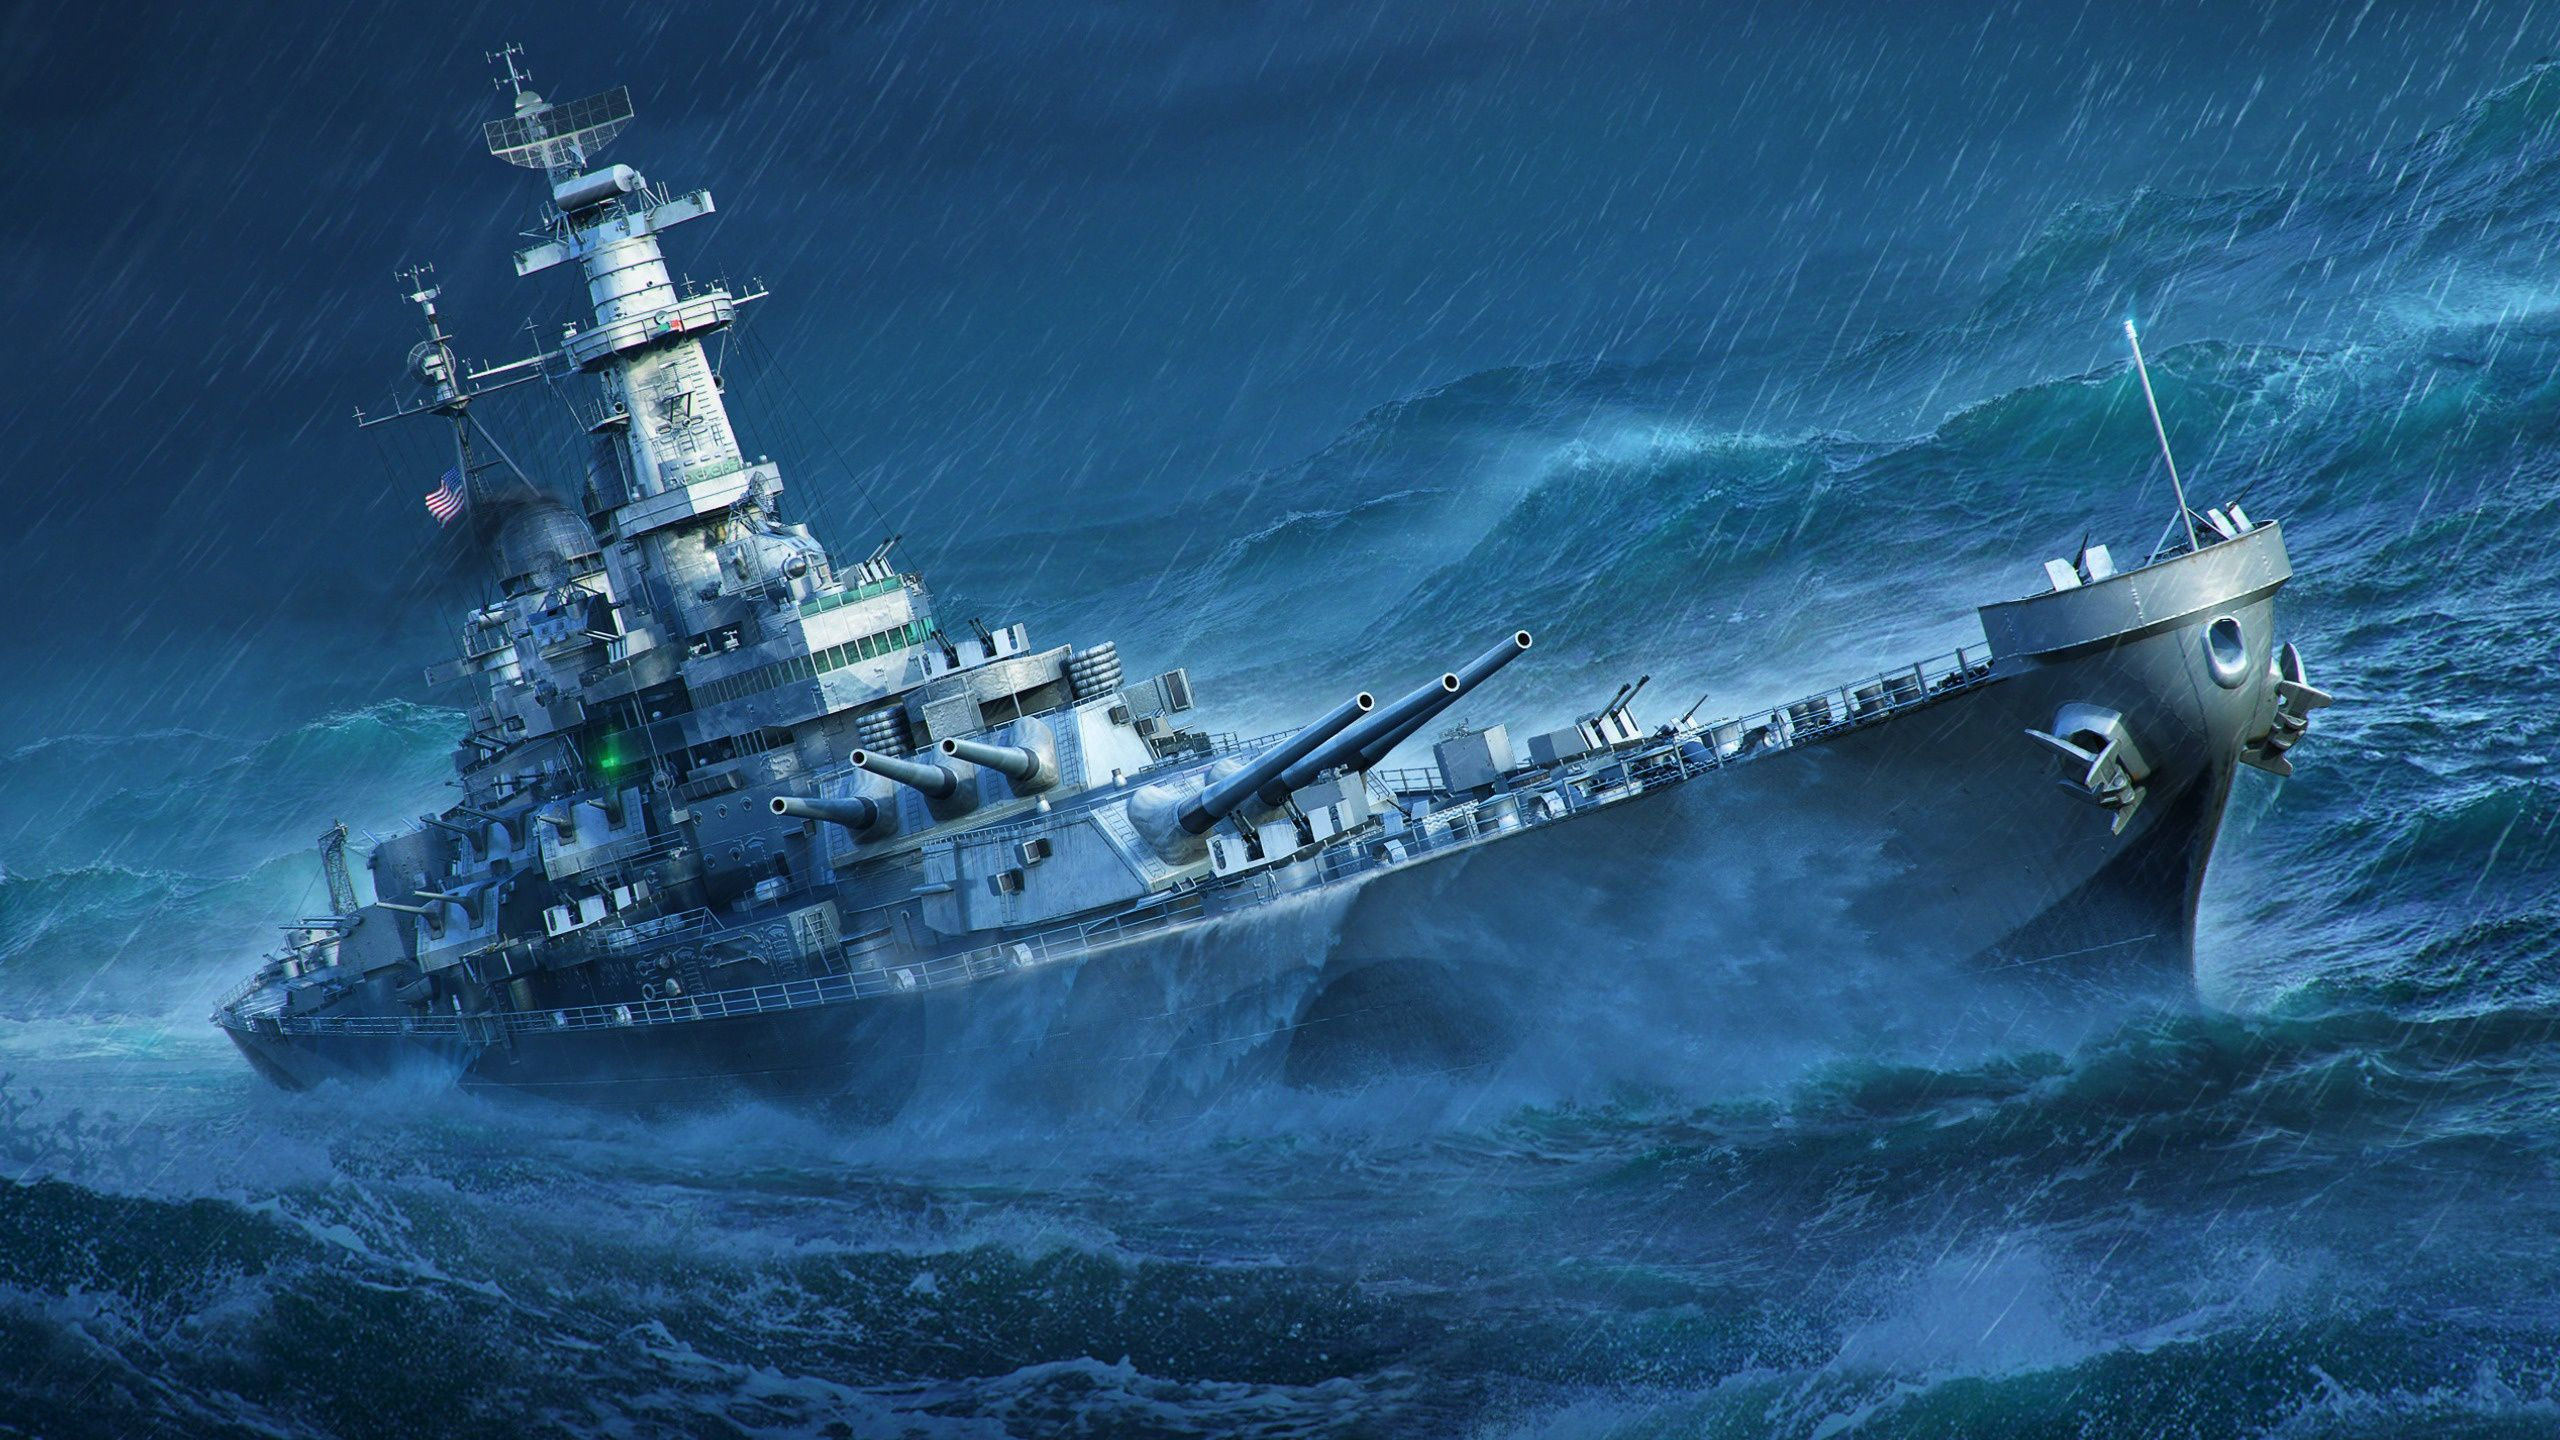 Video Game World Of Warships Warships Heart Wave Ship Sea Warship